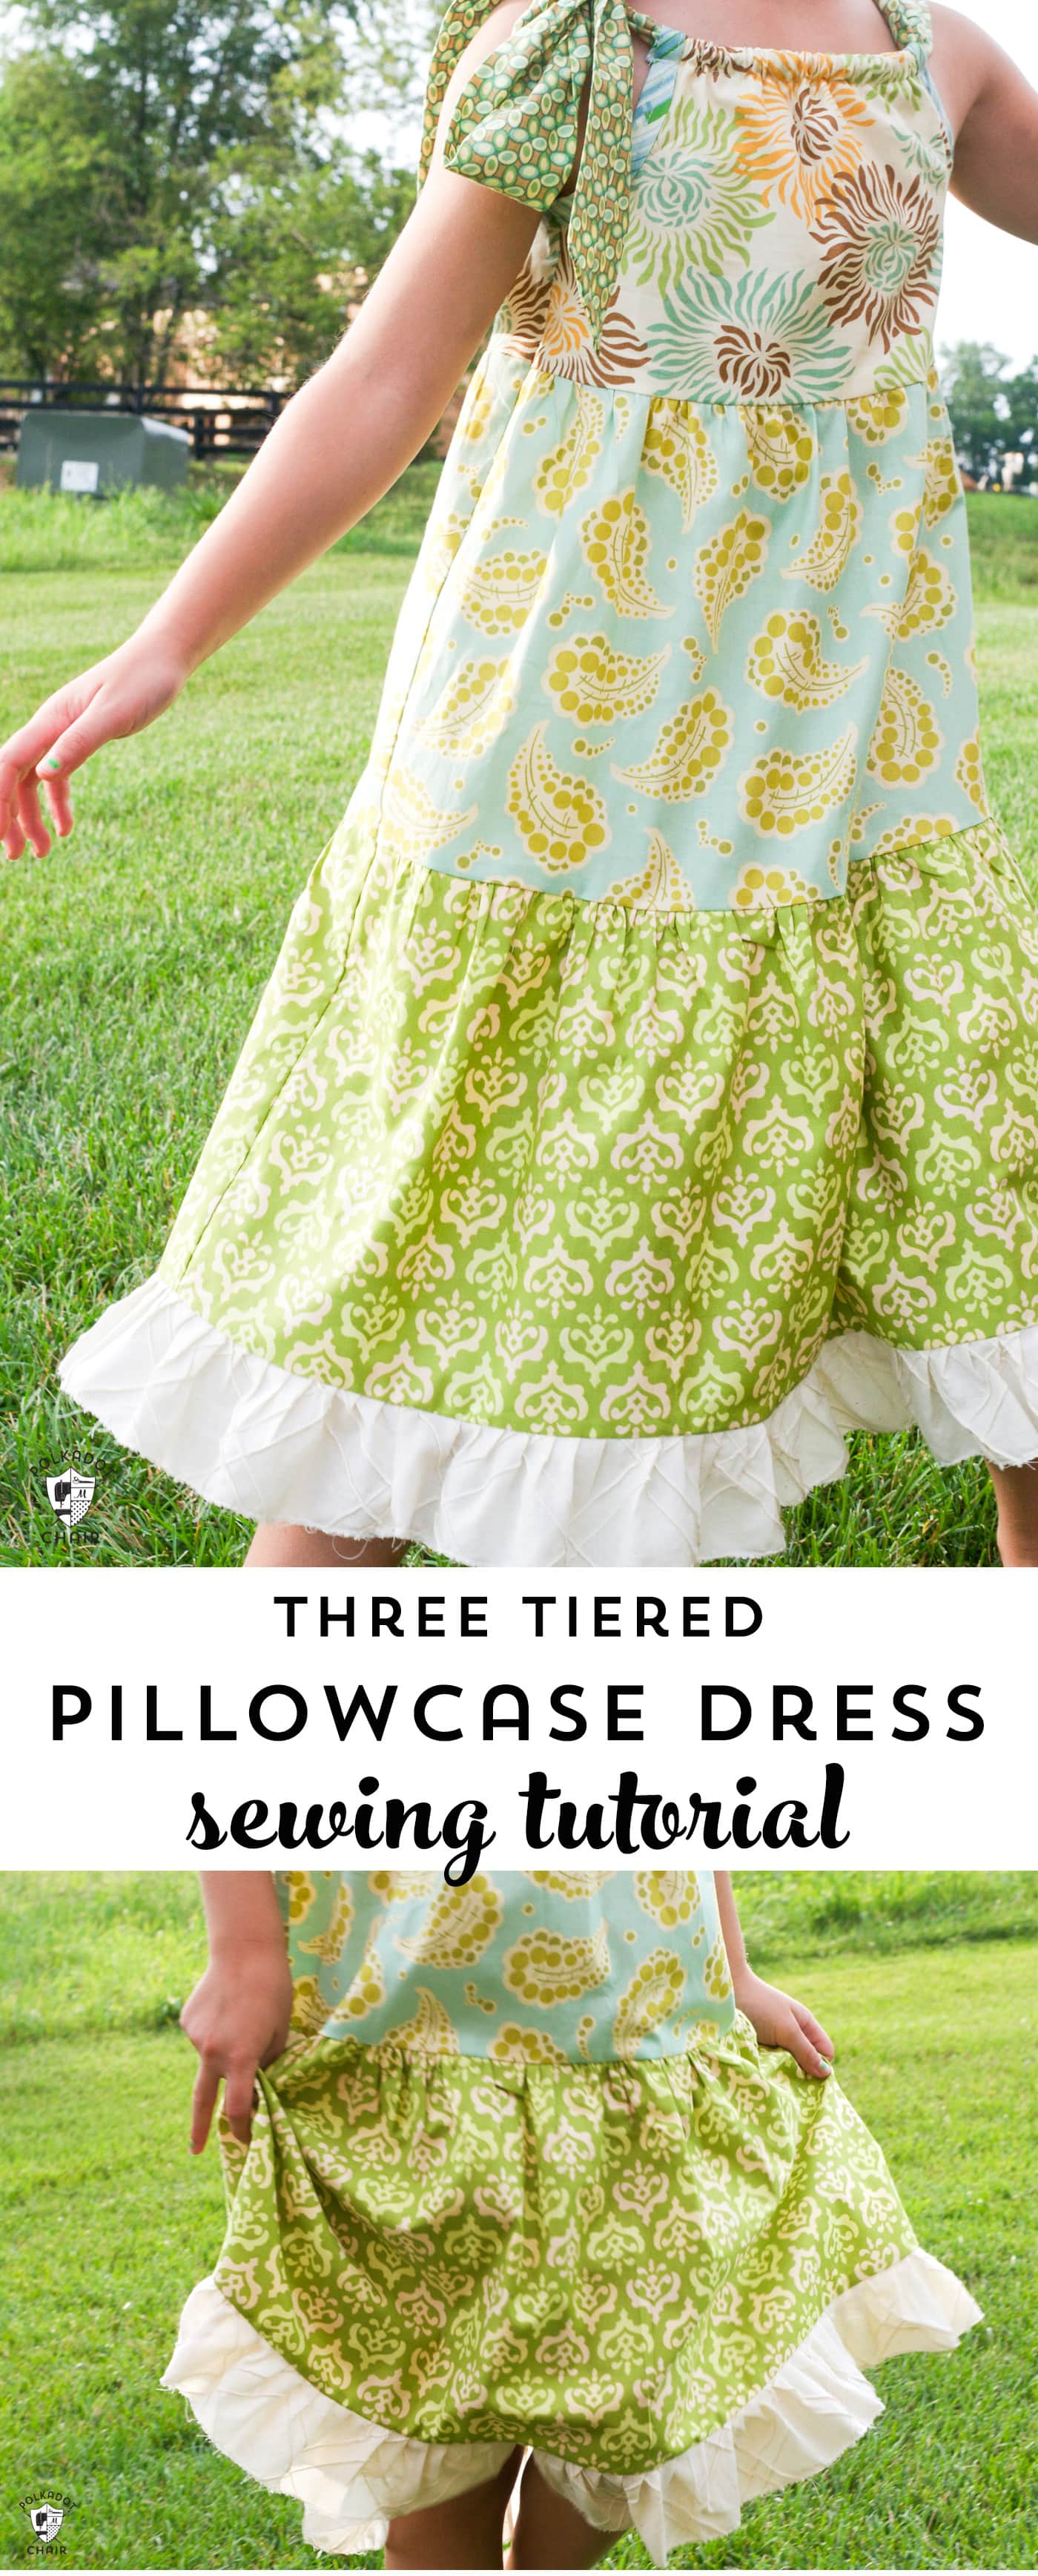 Learn how to sew a simple pillowcase dress with this free tiered pillowcase dress sewing pattern. #sewingforgirls #dresspatterns #freepatterns #freesewingpatterns